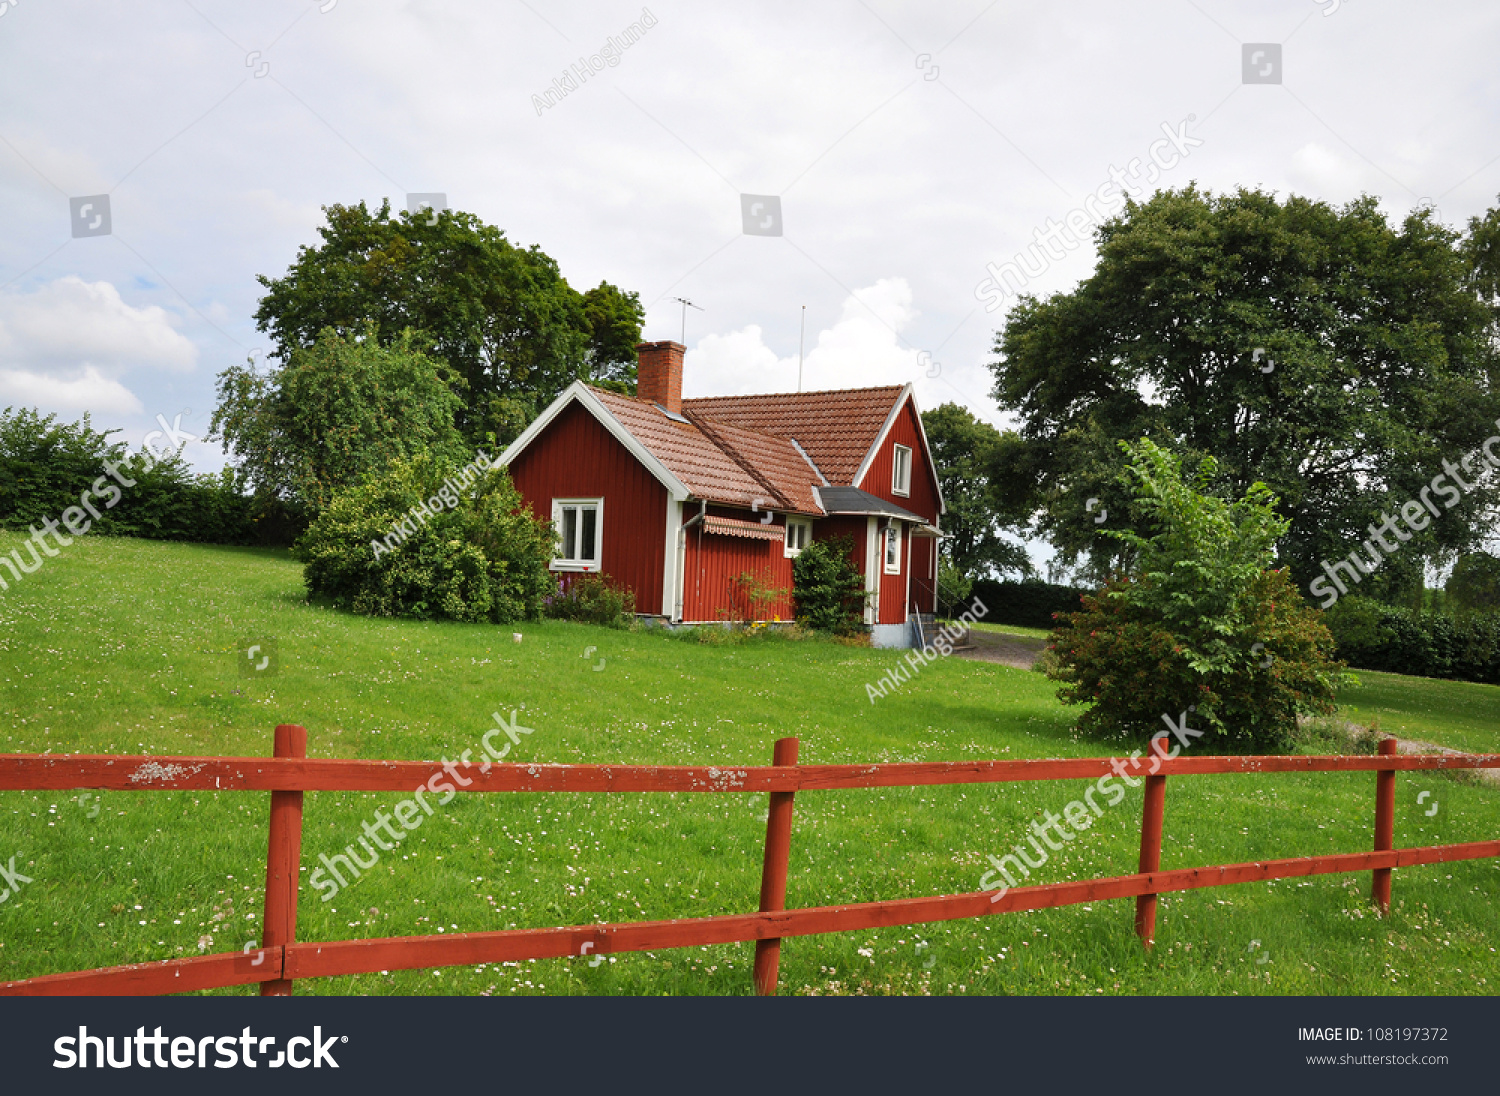 Red cottage garden trees bushes stock photo 108197372 for Red cottage